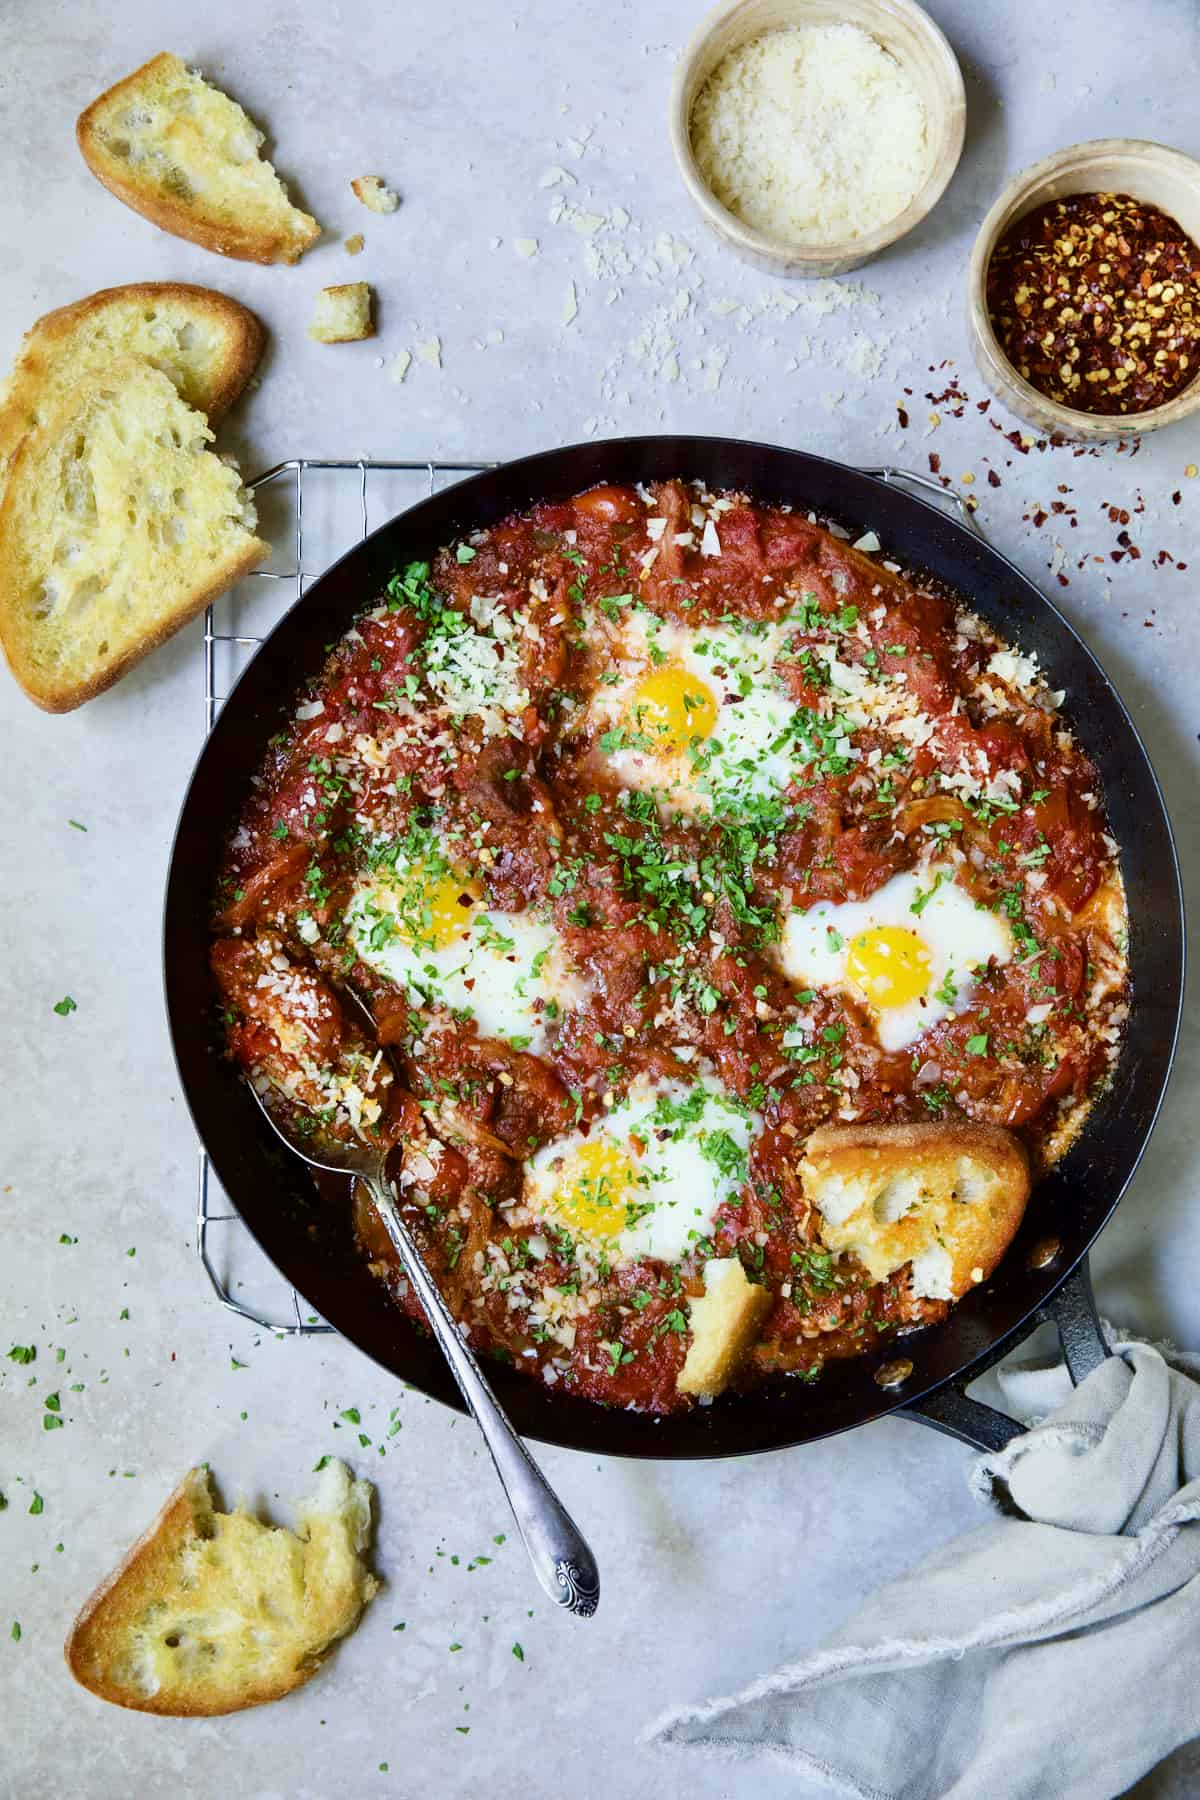 Eggs in Purgatory with Italian Sausage in skillet with broken toasted bread.